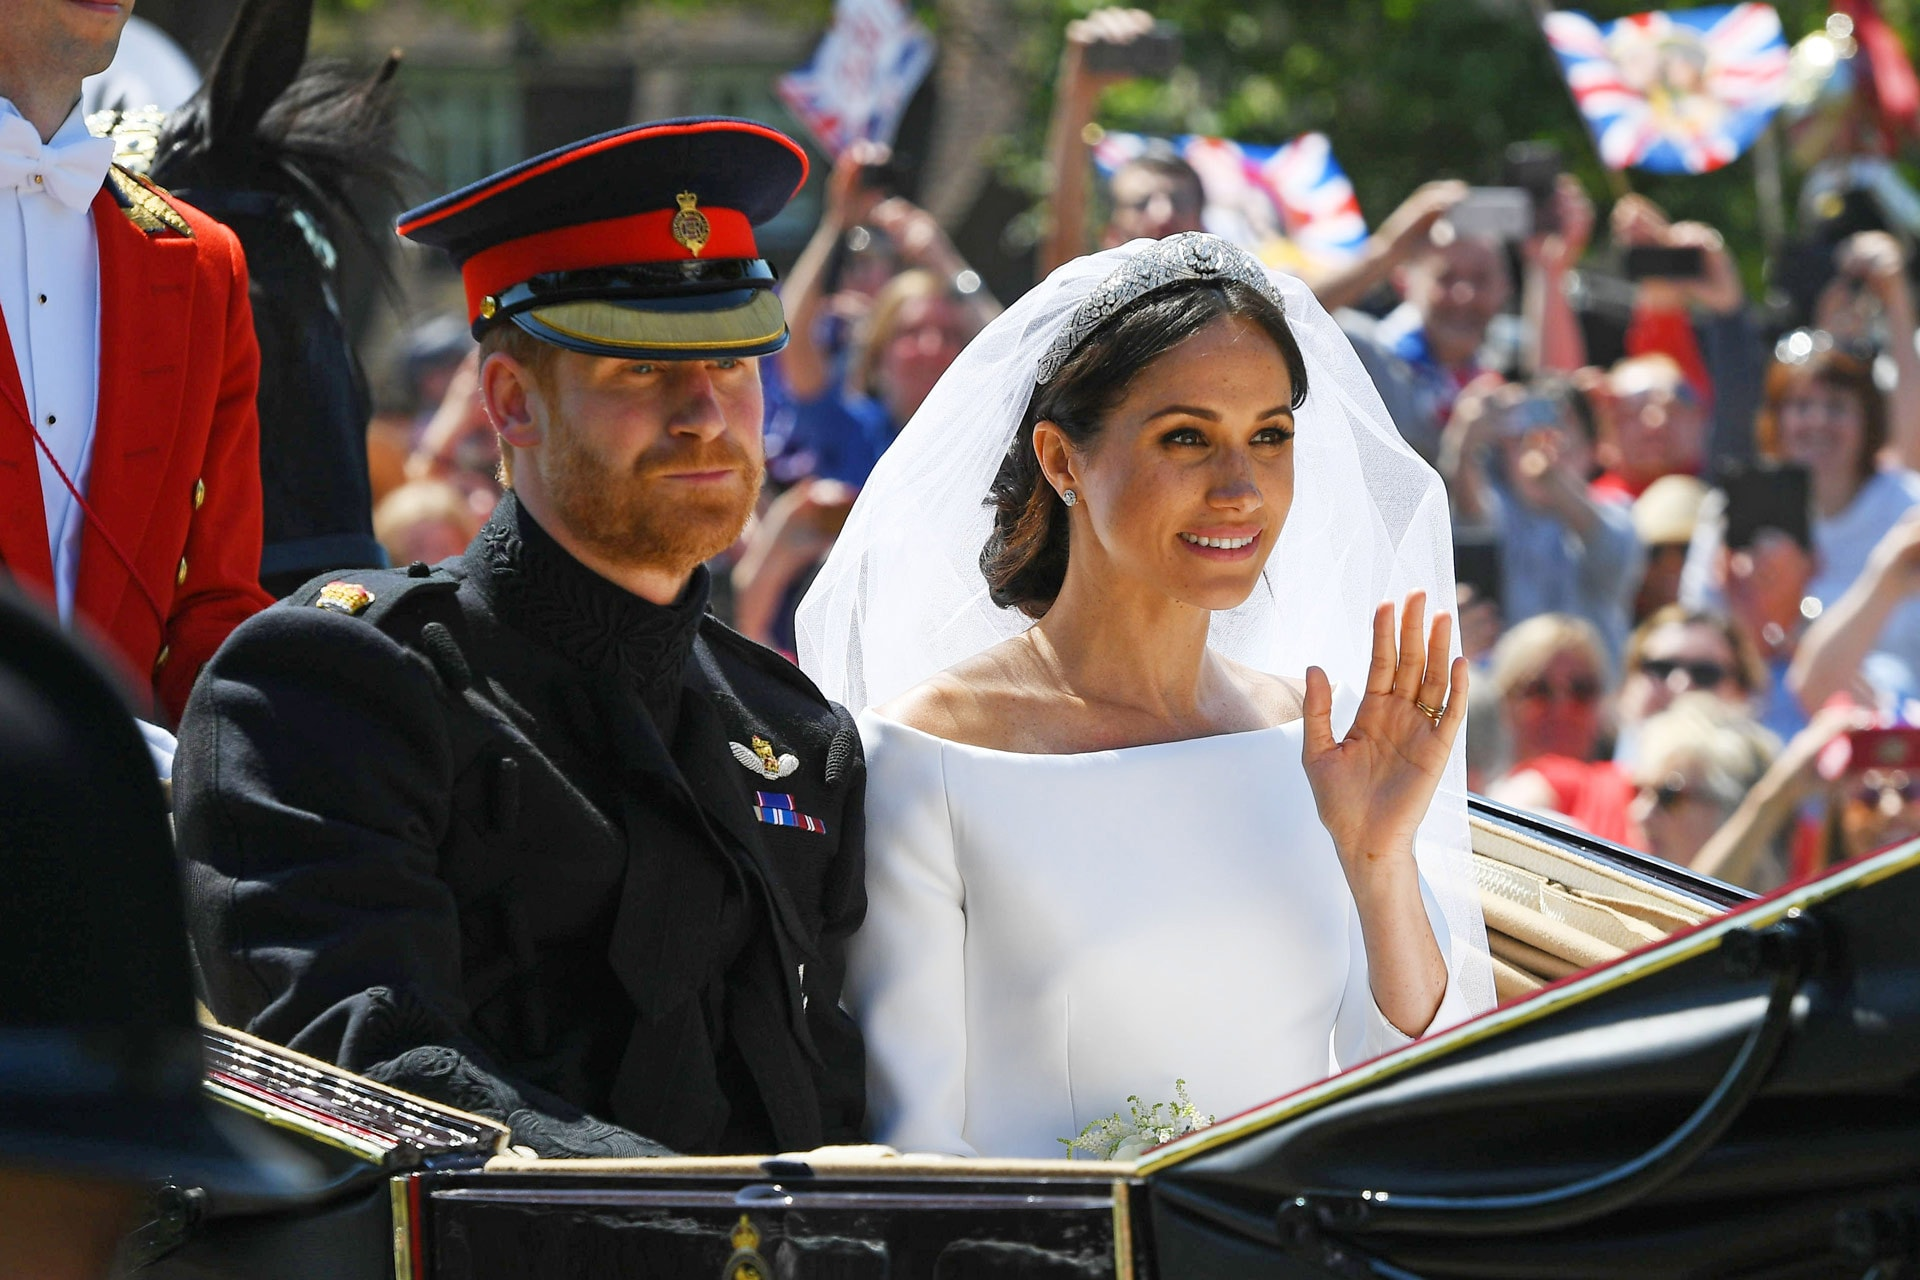 This will be Prince Harry and Meghan Markle's first public engagement after the royal wedding